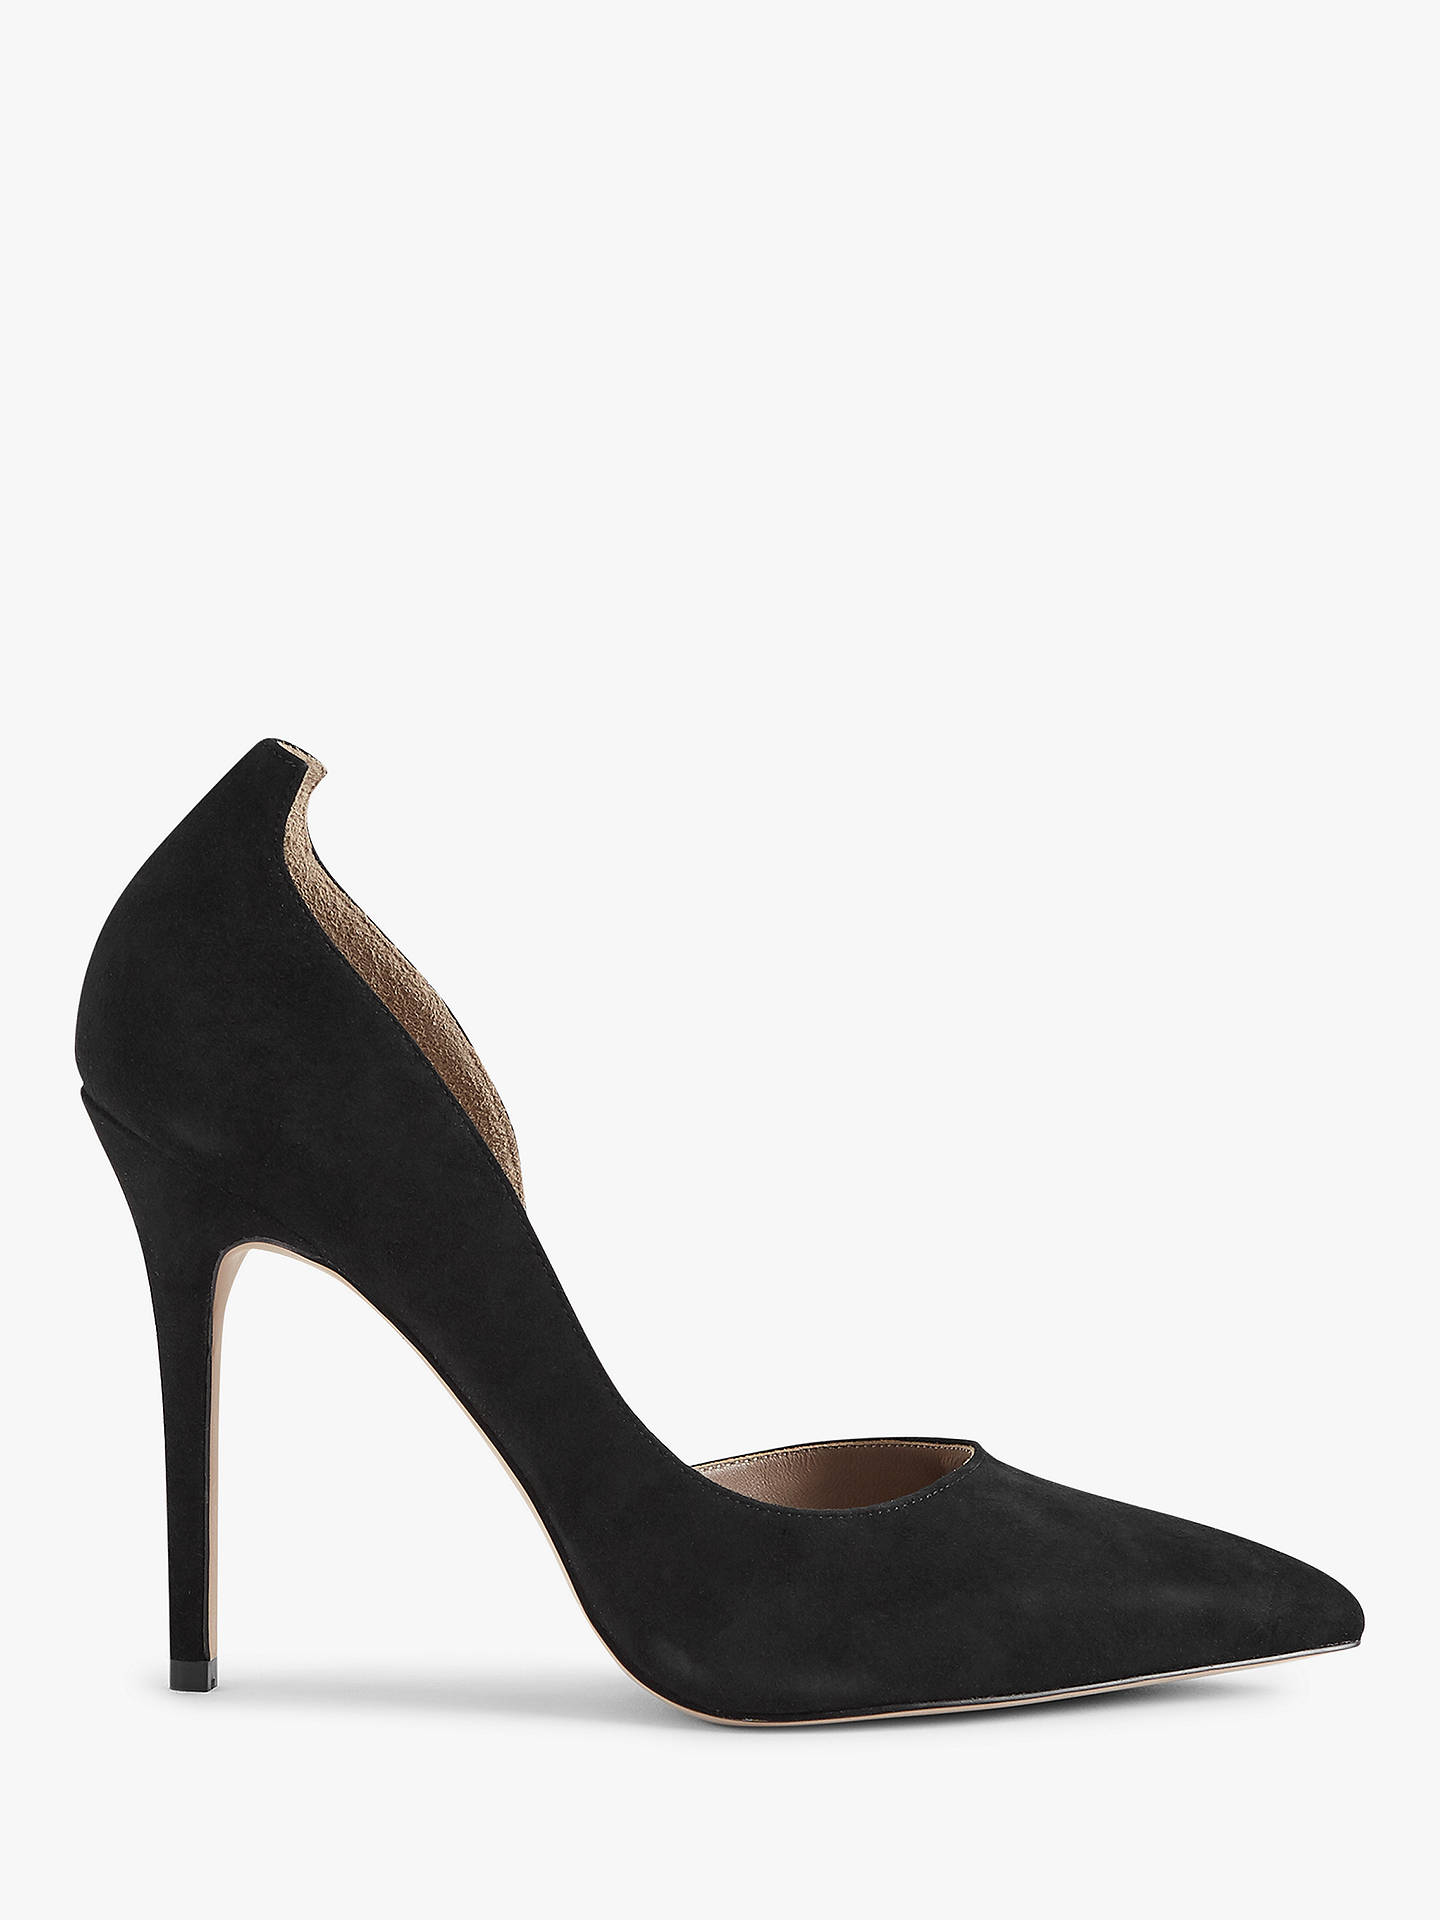 364d24a7213 Reiss Alberta Suede Court Shoes at John Lewis & Partners